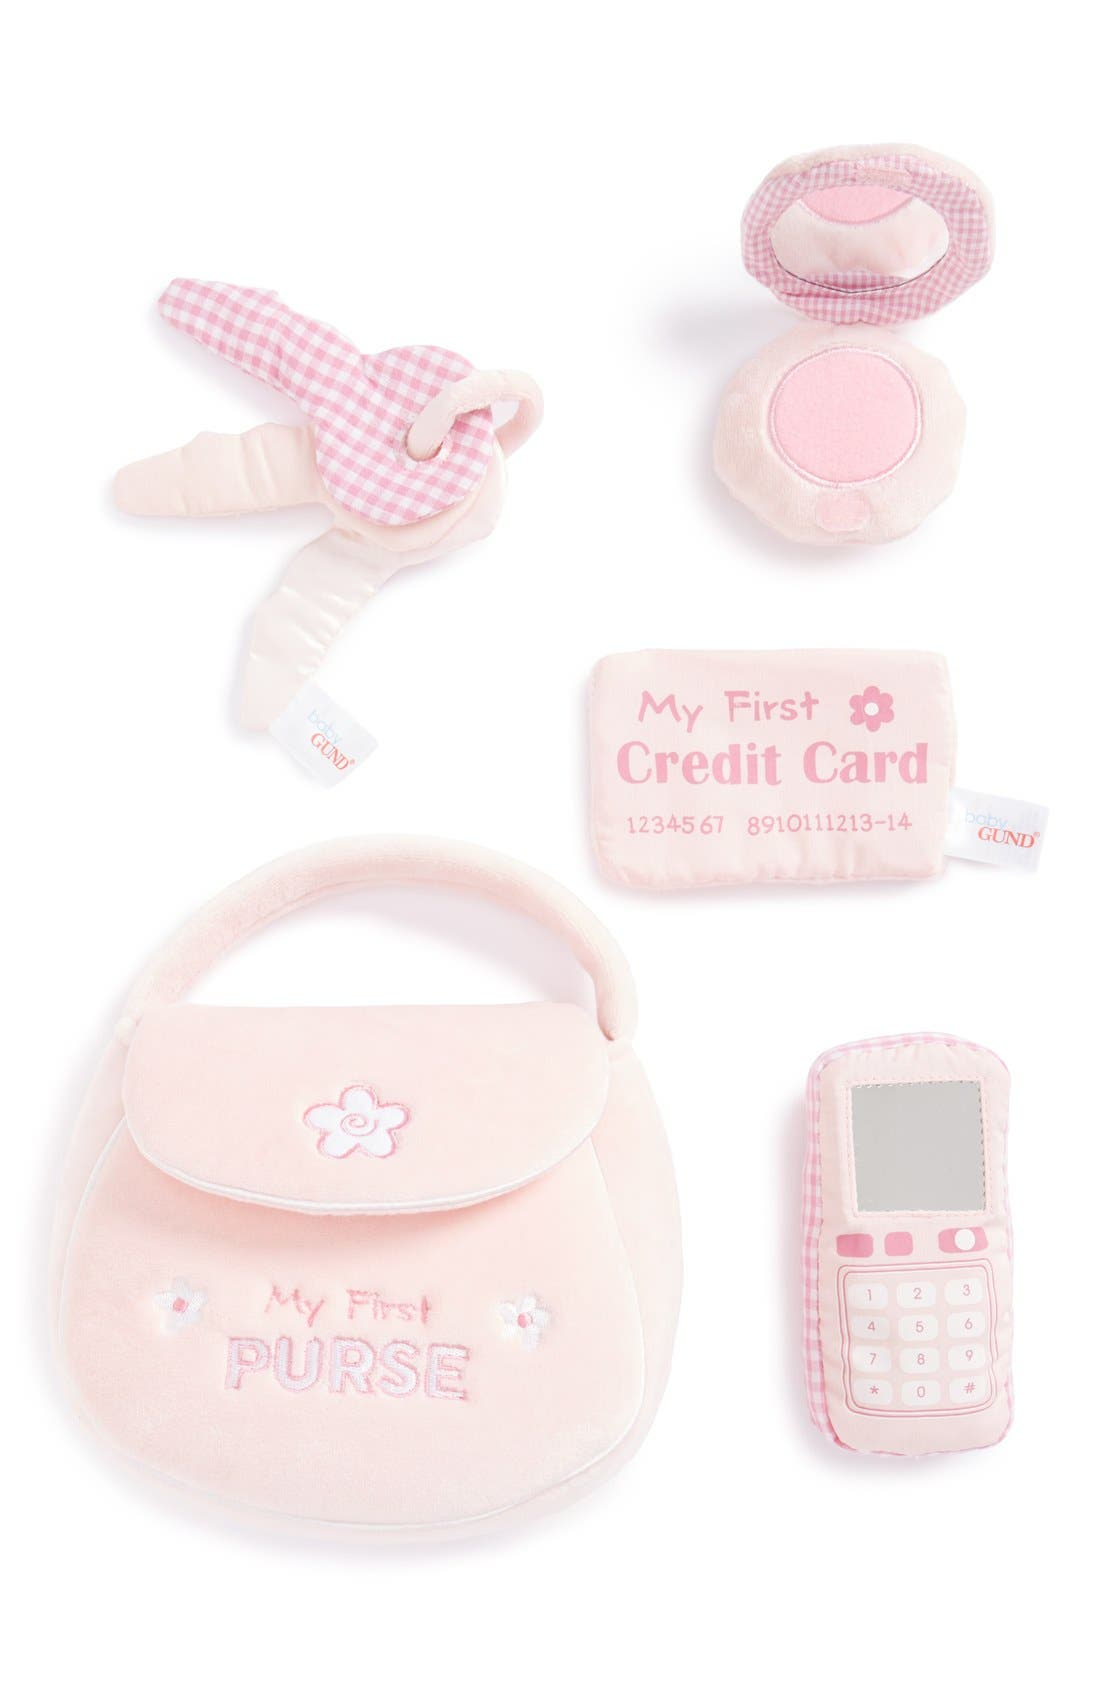 Baby Gund 'My First Purse' Play Set,                             Main thumbnail 1, color,                             650